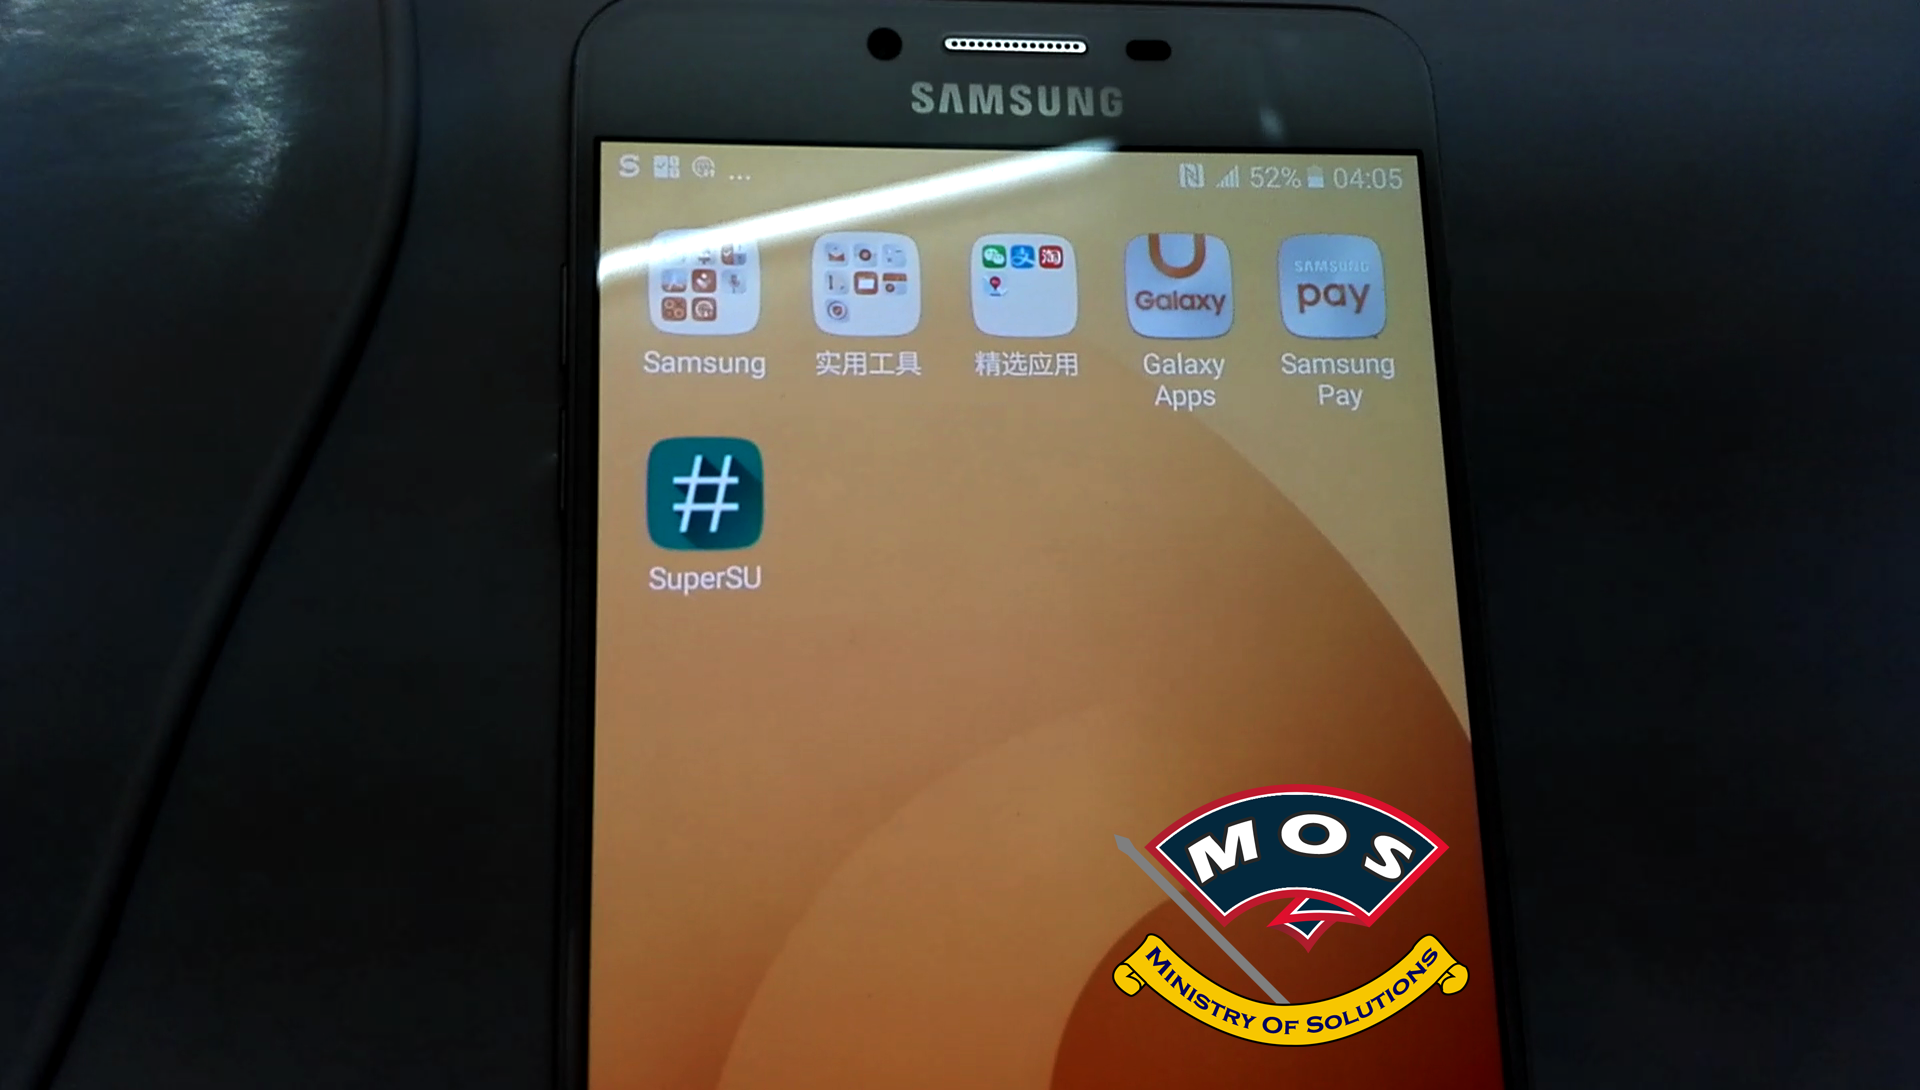 Samsung C9 Pro (SM-C9000) Rooted and Gapps Installed - Ministry Of